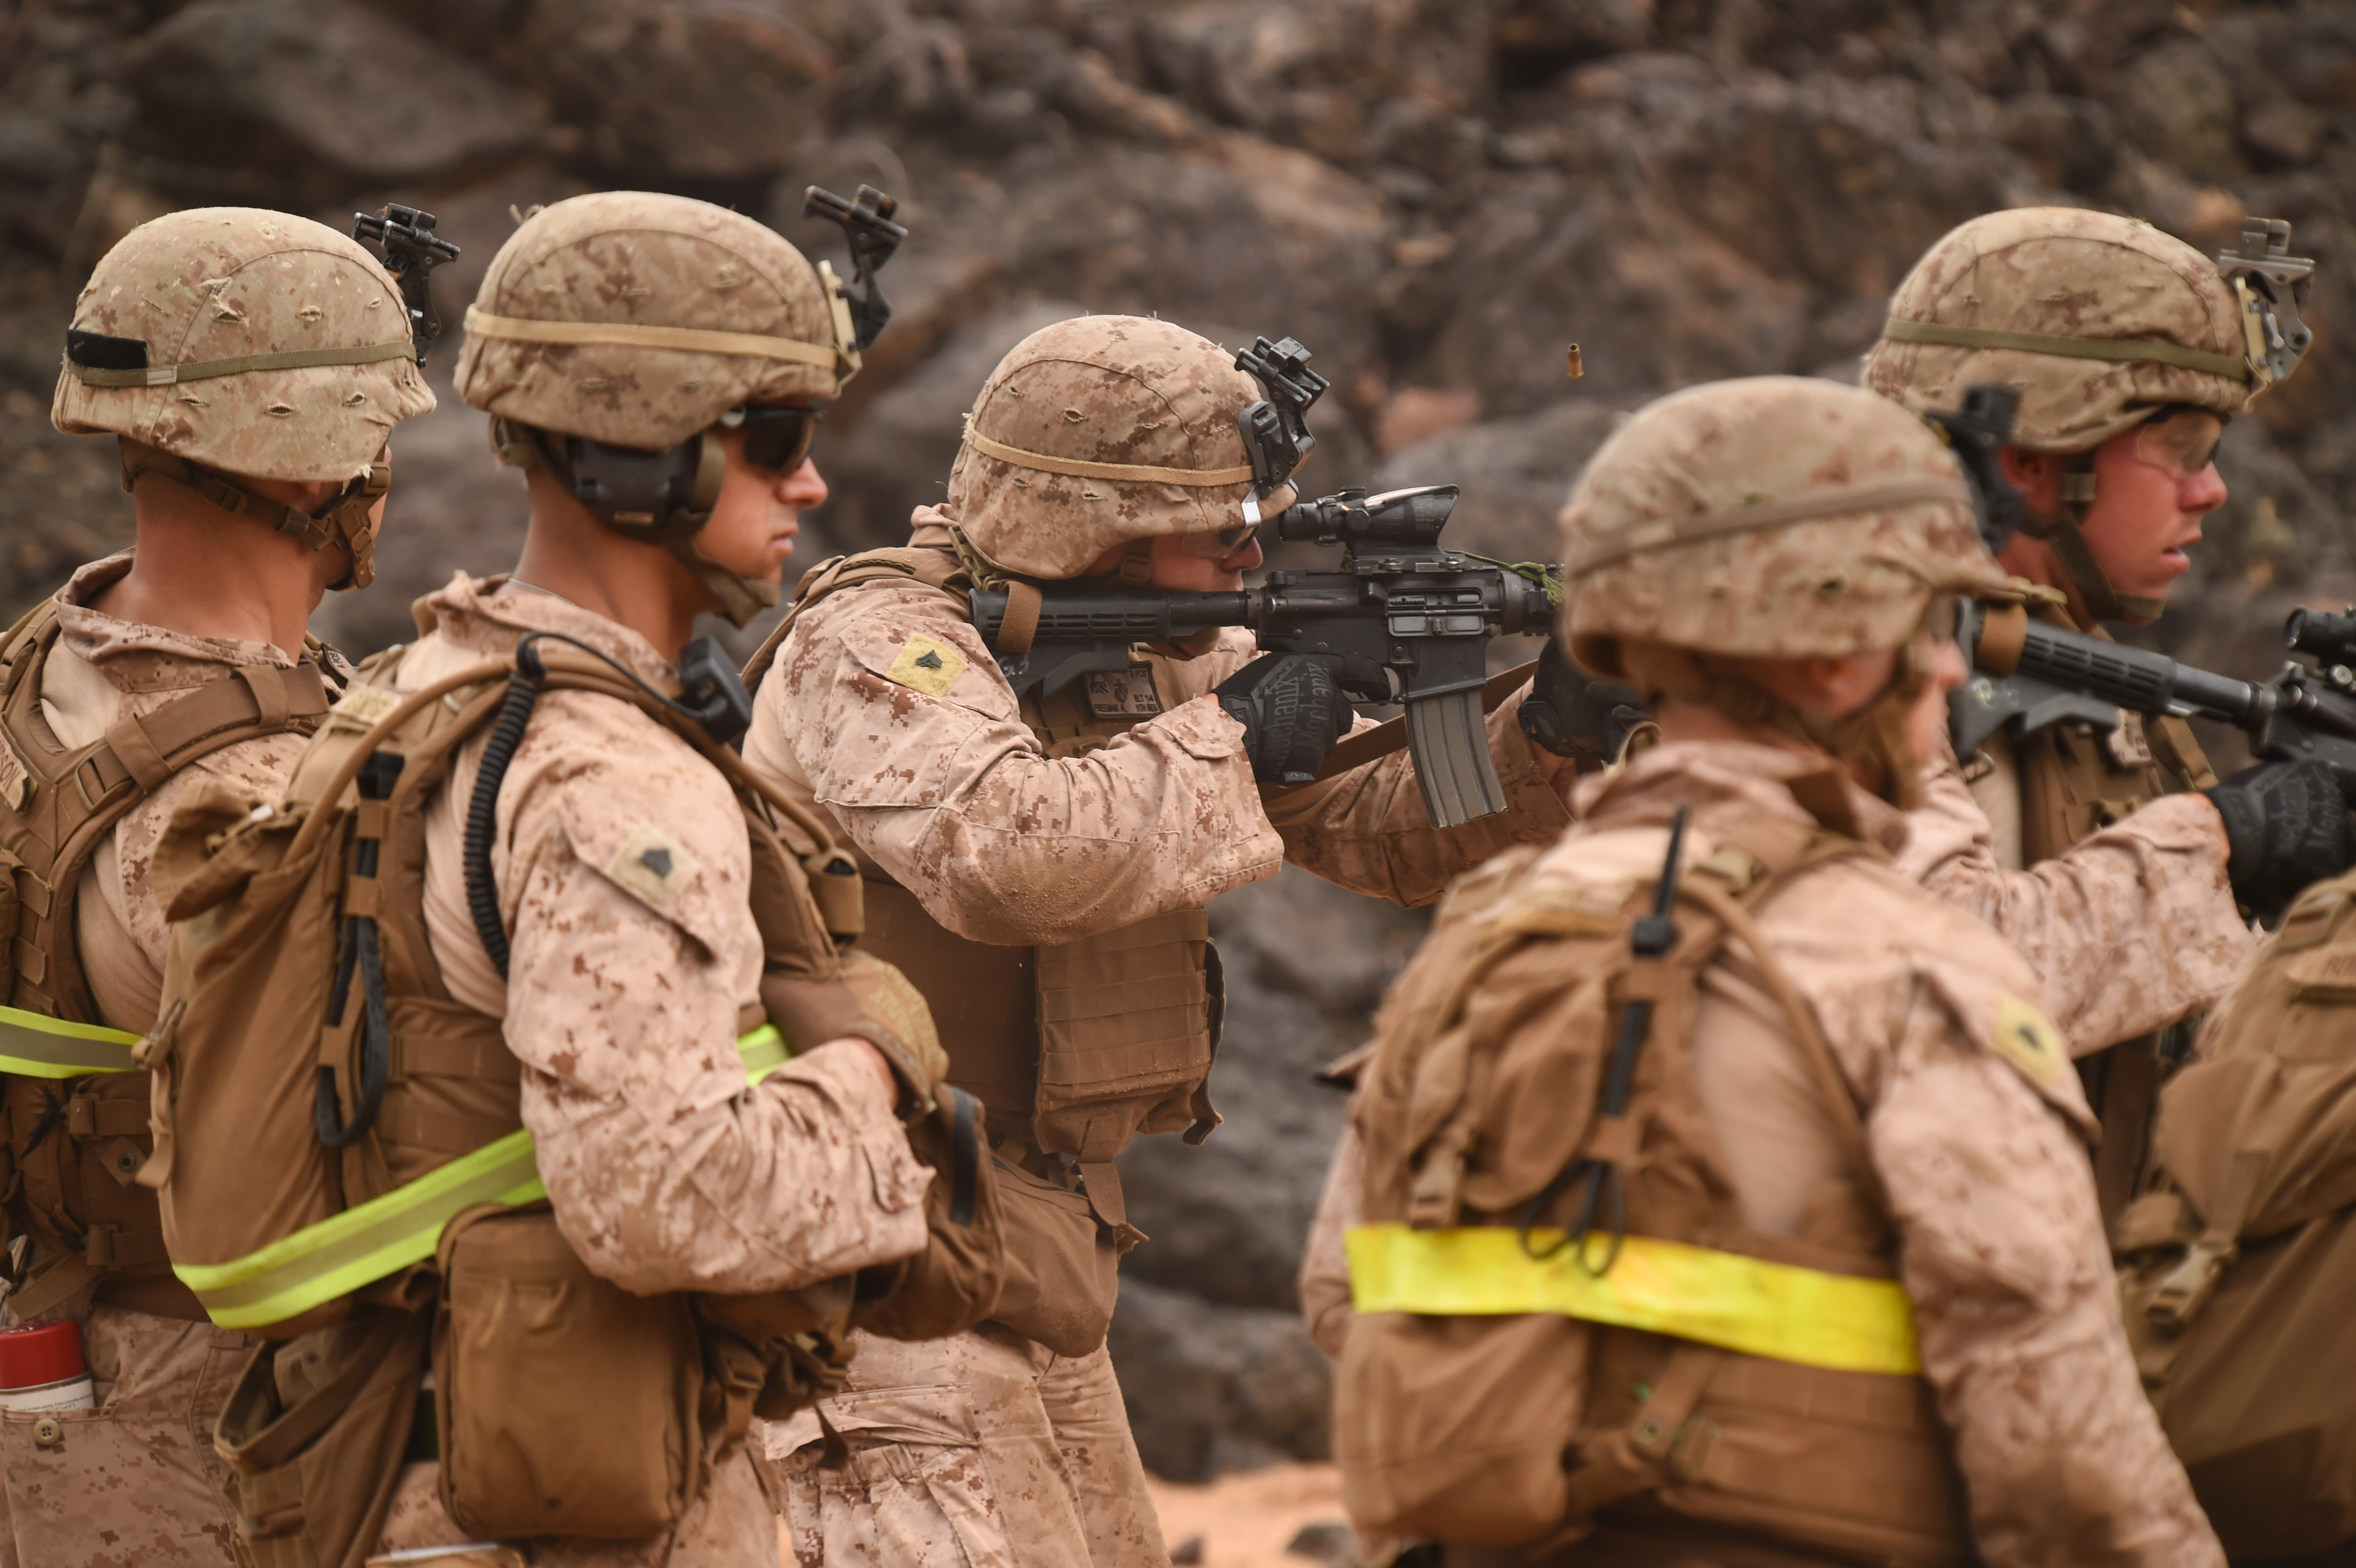 U.S. Marines with Alpha Company, 1st Battalion, 11th Marine Expeditionary Unit (MEU), focus downrange during a Combat Marksmanship Program shoot, Feb. 14, 2017, at Arta Beach in Djibouti. Marines worked on engaging a target while moving and under physical stress. A MEU is a forward-deployed, flexible sea-based Marine air-ground task force ready to respond to crisis and conduct limited contingency operations. (U.S. Air National Guard photo by Staff Sgt. Penny Snoozy)